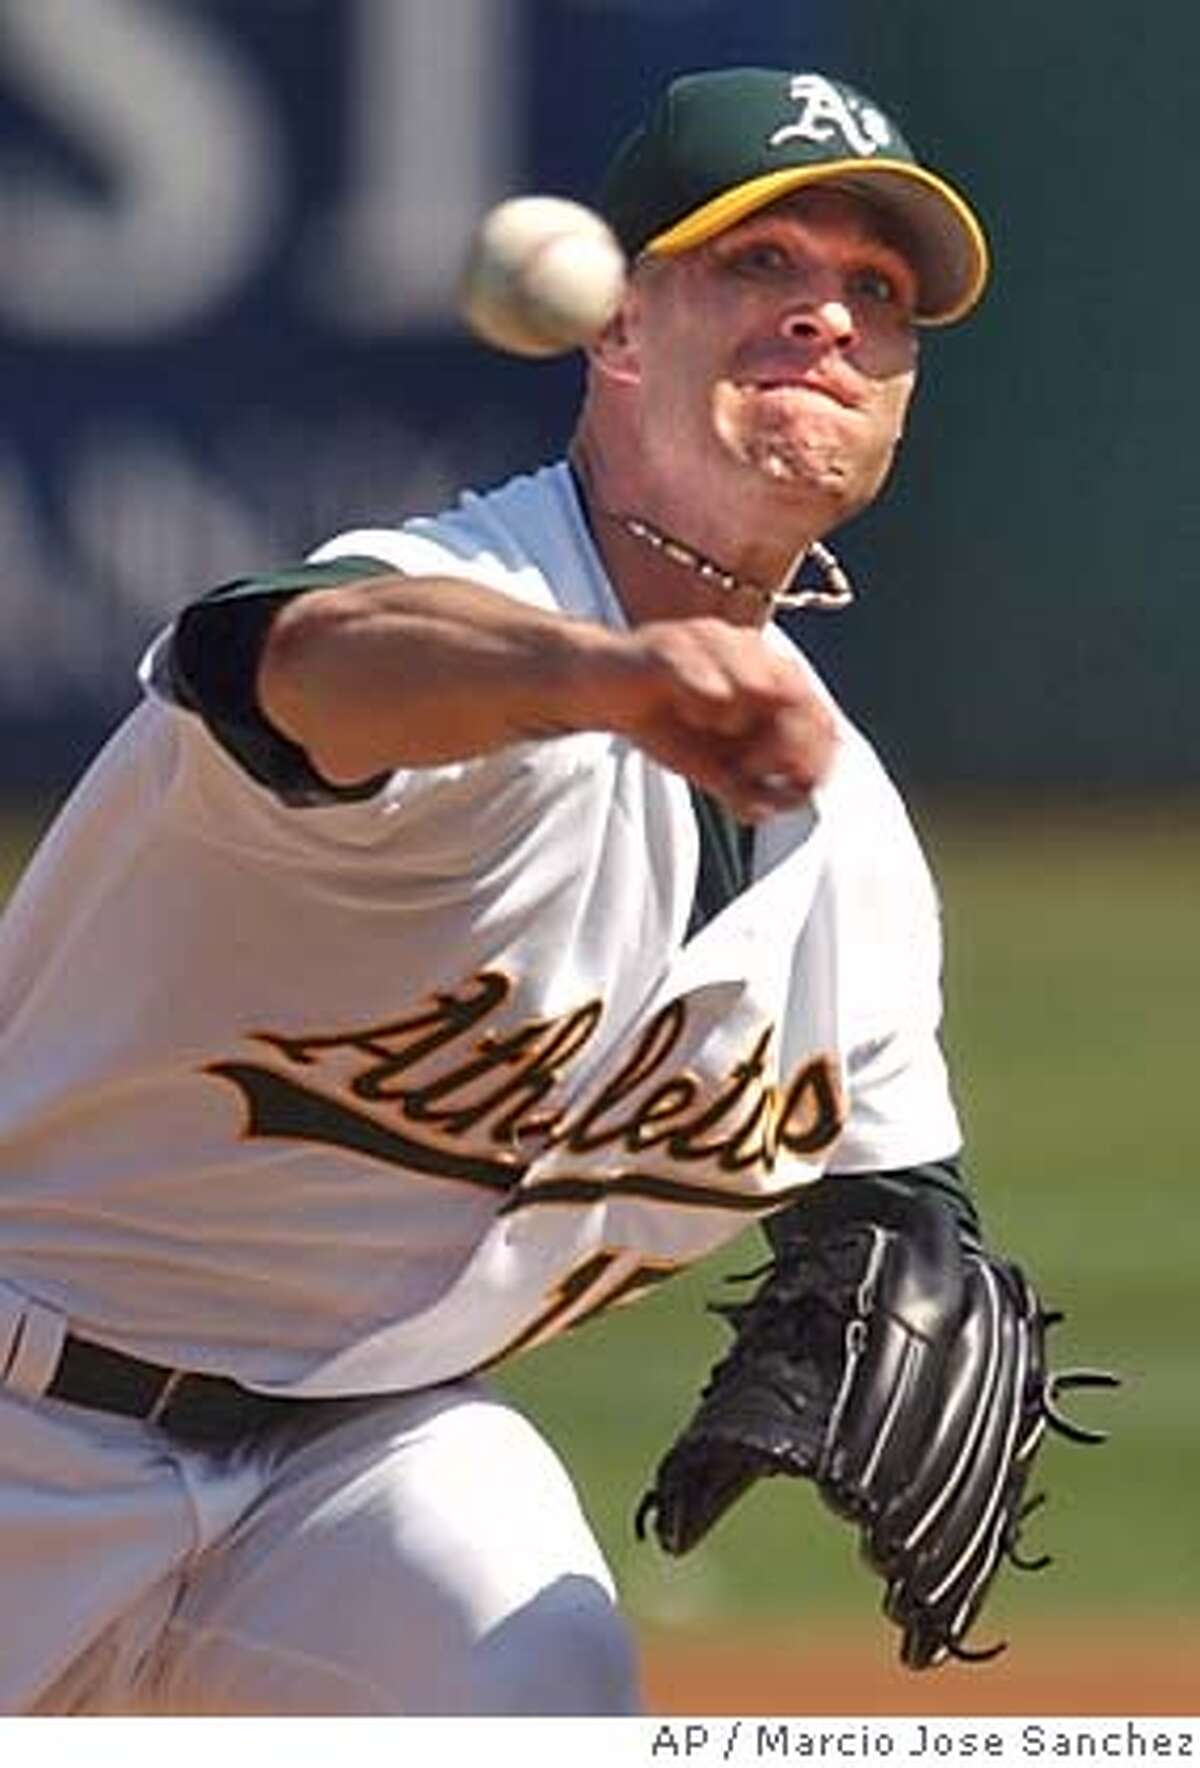 Oakland Athletics catcher Tim Hudson pitches to the Anaheim Angels in the first inning on Sunday, Oct. 3, 2004 in Oakland, Calif. Oakland won 3-2. (AP Photo/Marcio Jose Sanchez) Ran on: 10-04-2004 Tim Hudson remained a tough-luck starter in the season finale with his ninth no-decision of 2004 and 30th in the last three years. Sports#Sports#Chronicle#12/6/2004#ALL#5star##0422392672